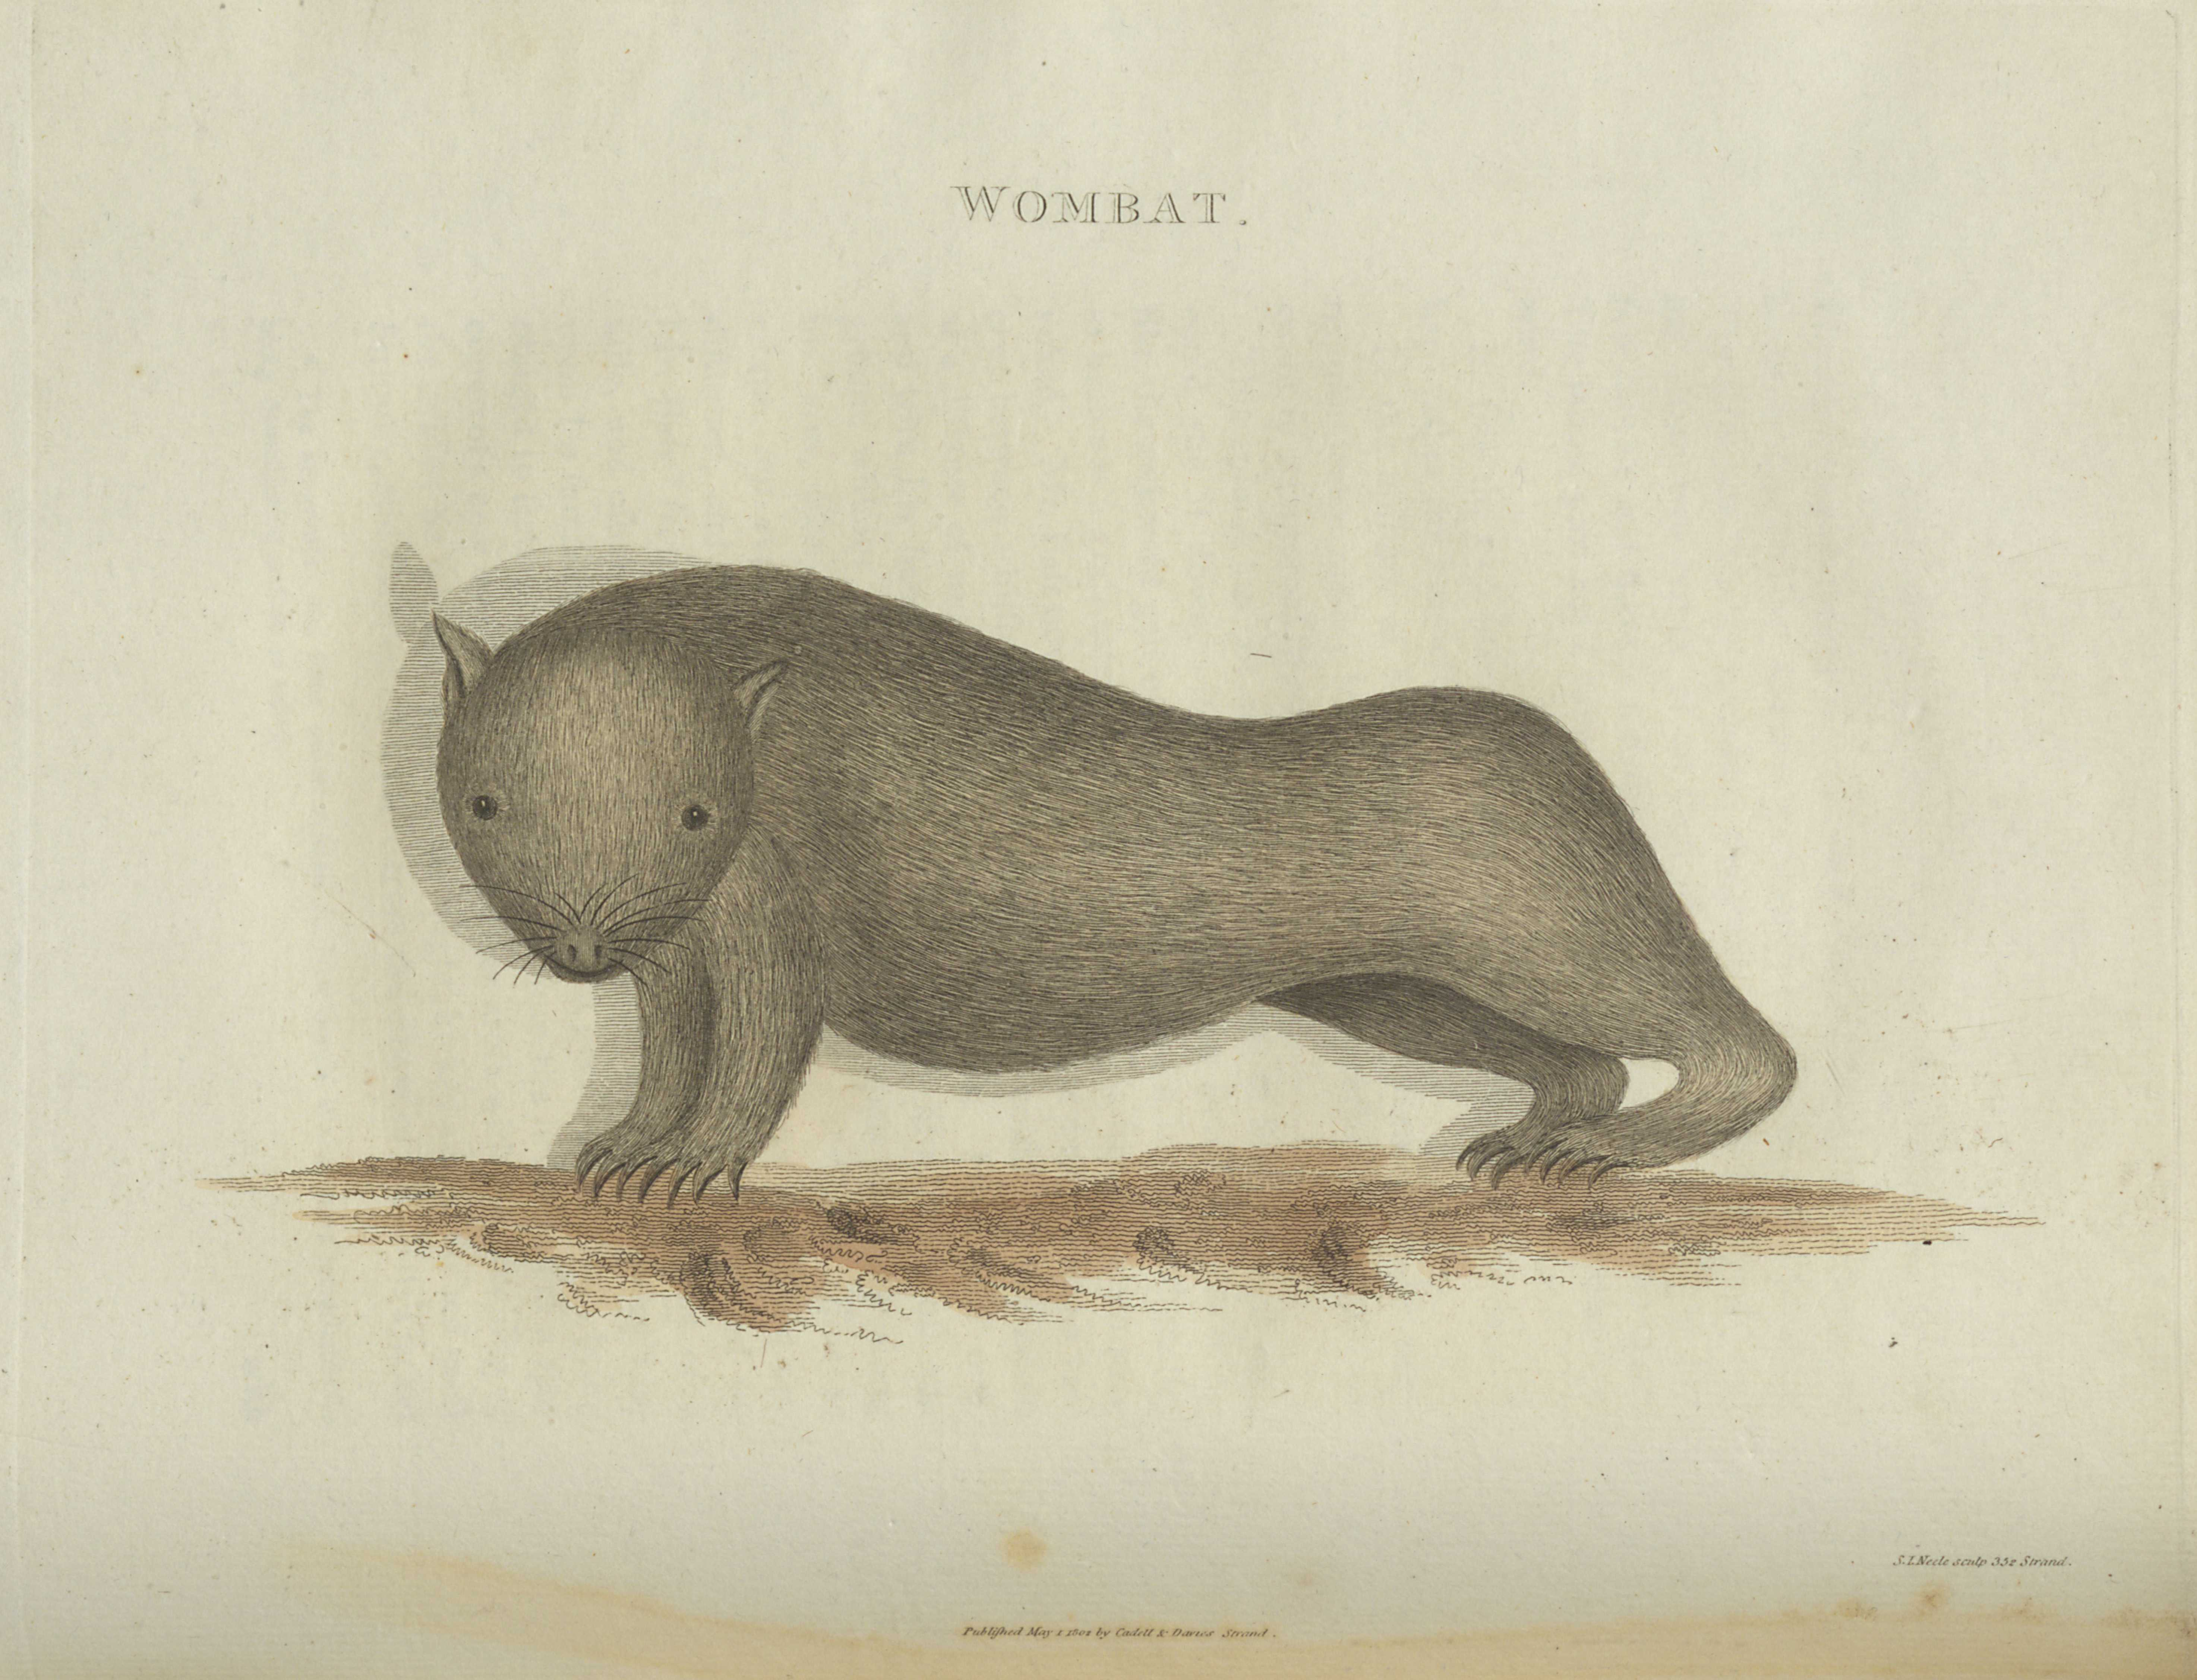 David Collins' An Account of the English Colony in New South Wales, wombat illustration